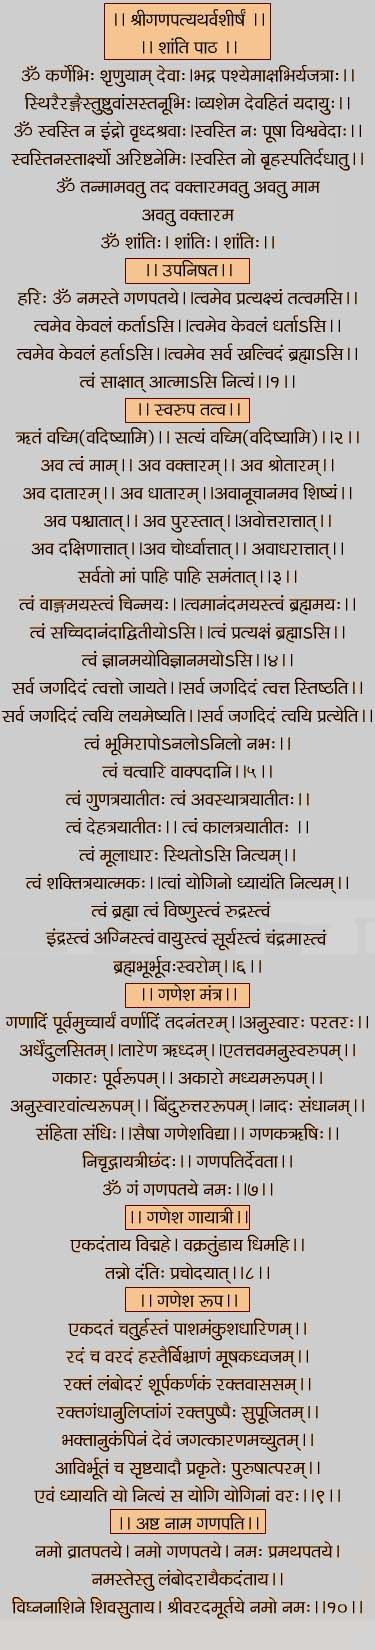 All About Shri Ganapati Atharvashirsha In Marathi Meaning And